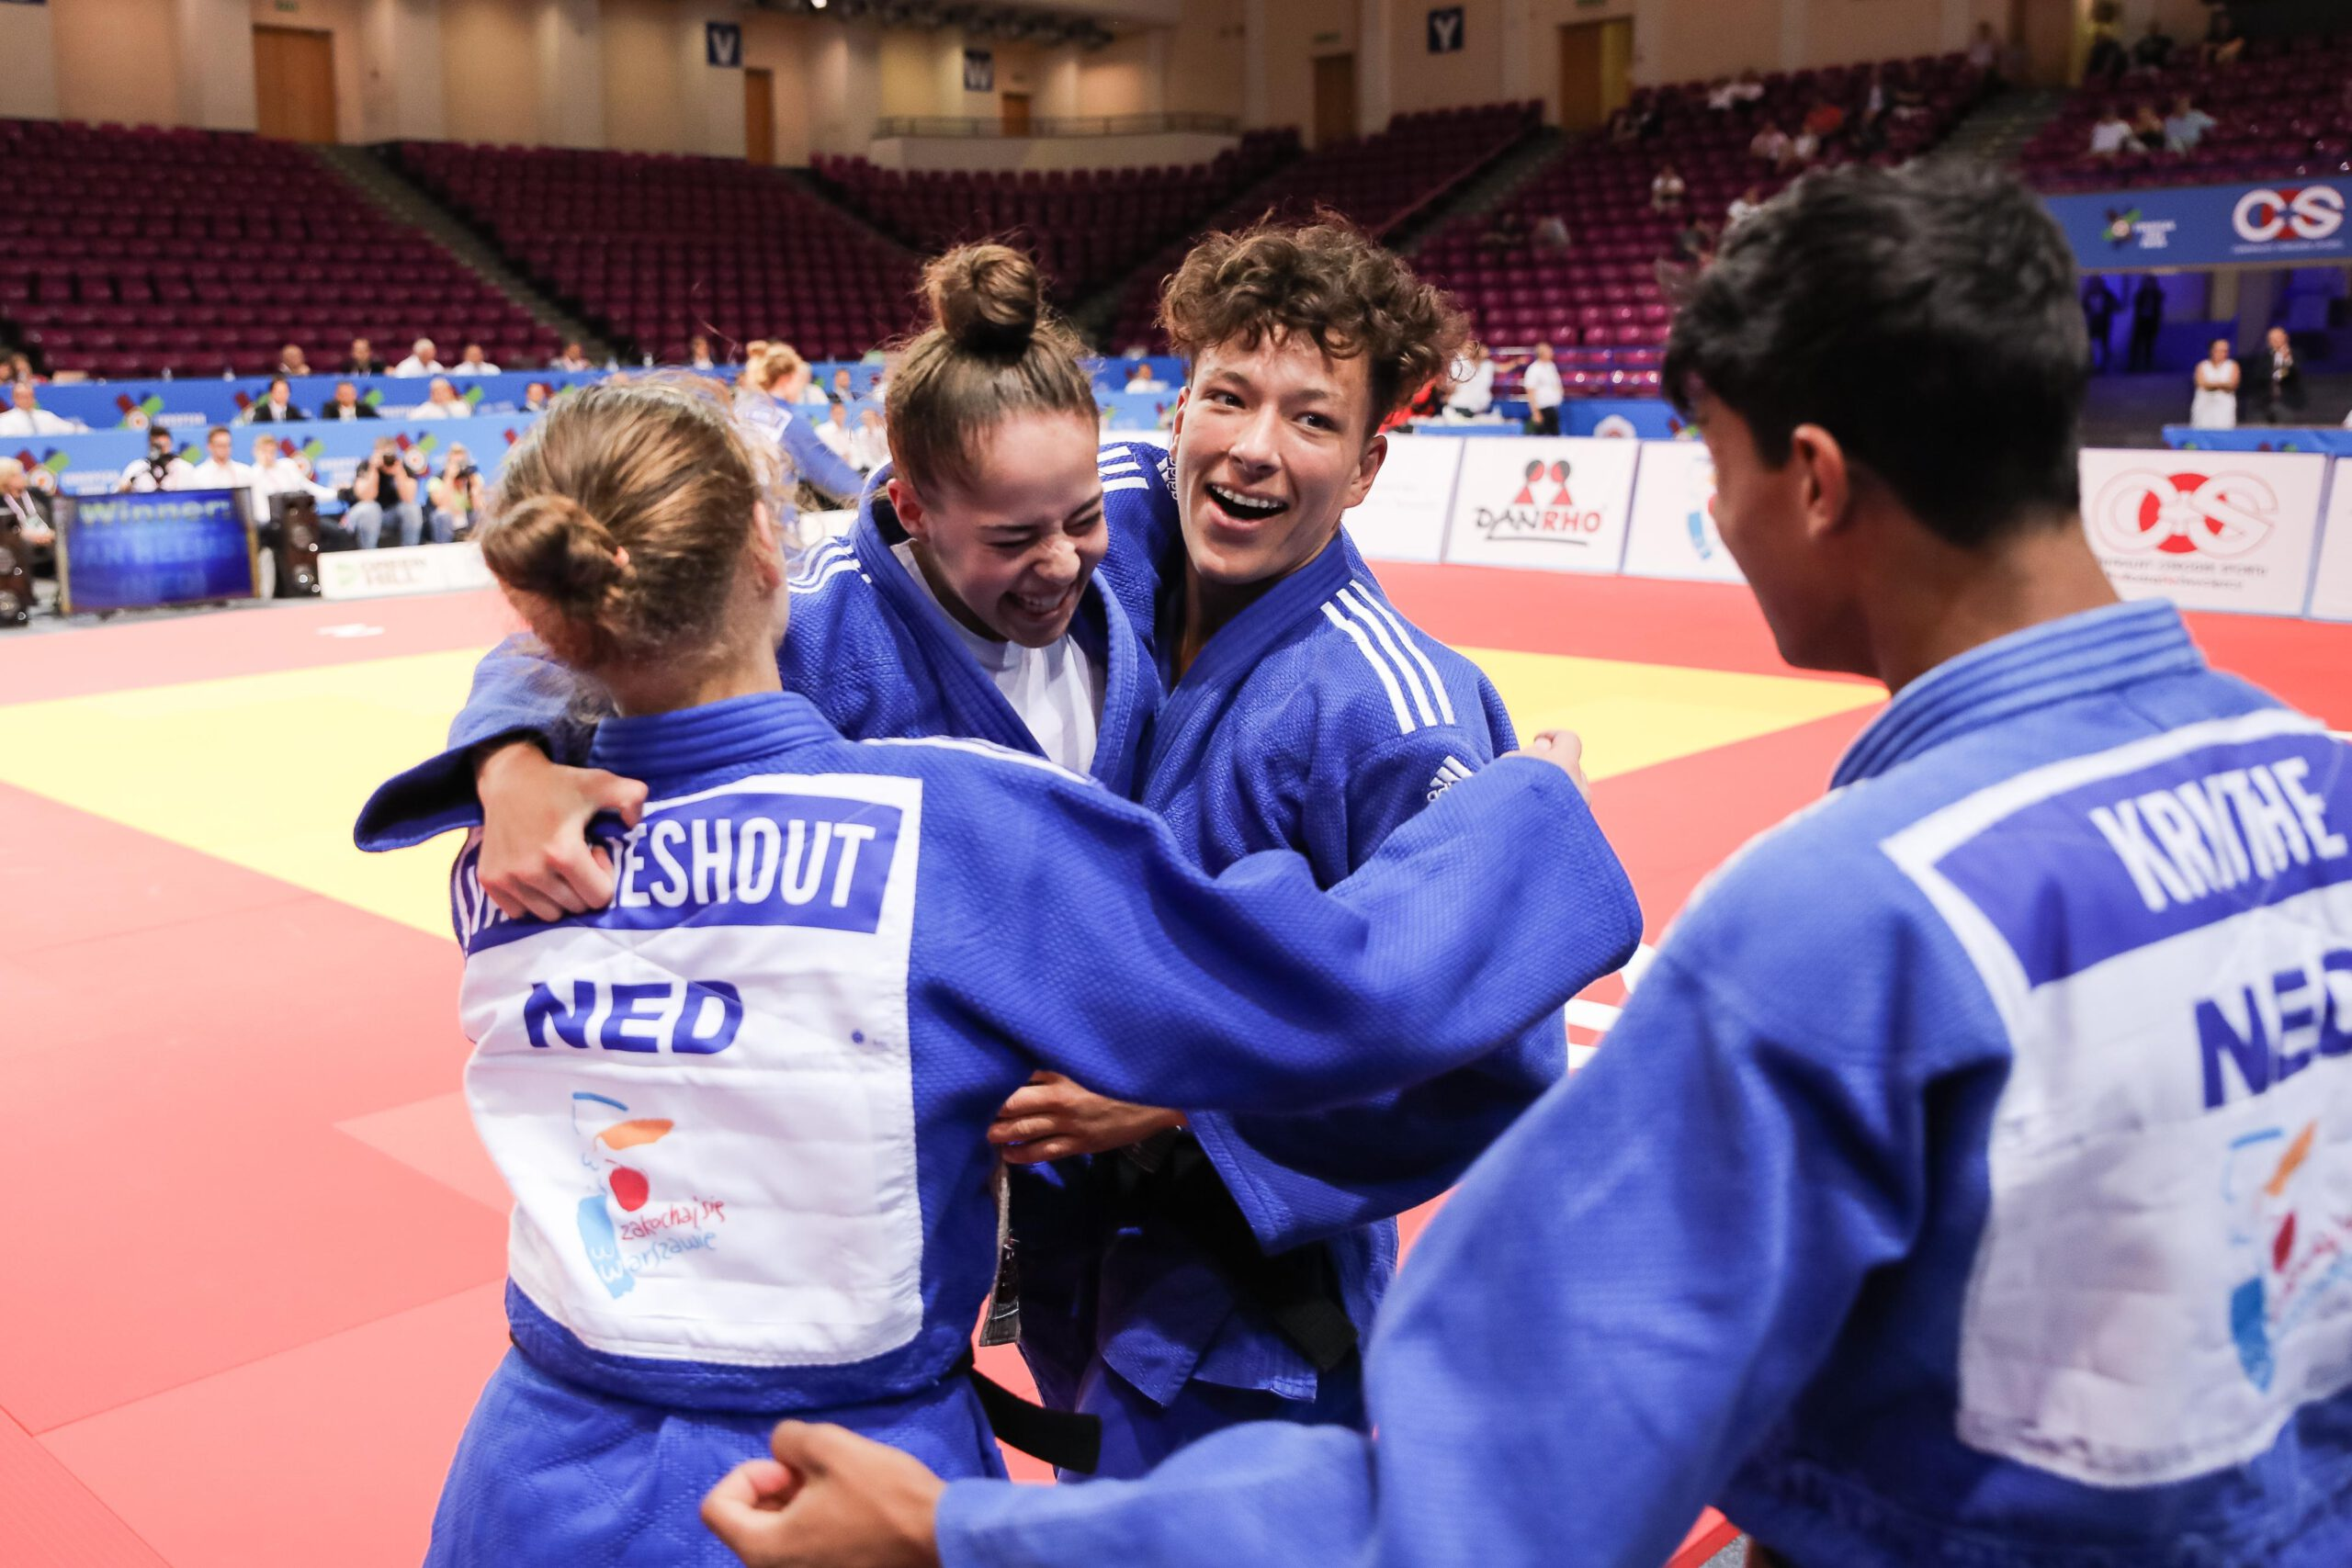 RETURN TO COMPETITION FOR CADETS AND JUNIORS FOLLOWING SENIOR WORLD CHAMPIONSHIPS